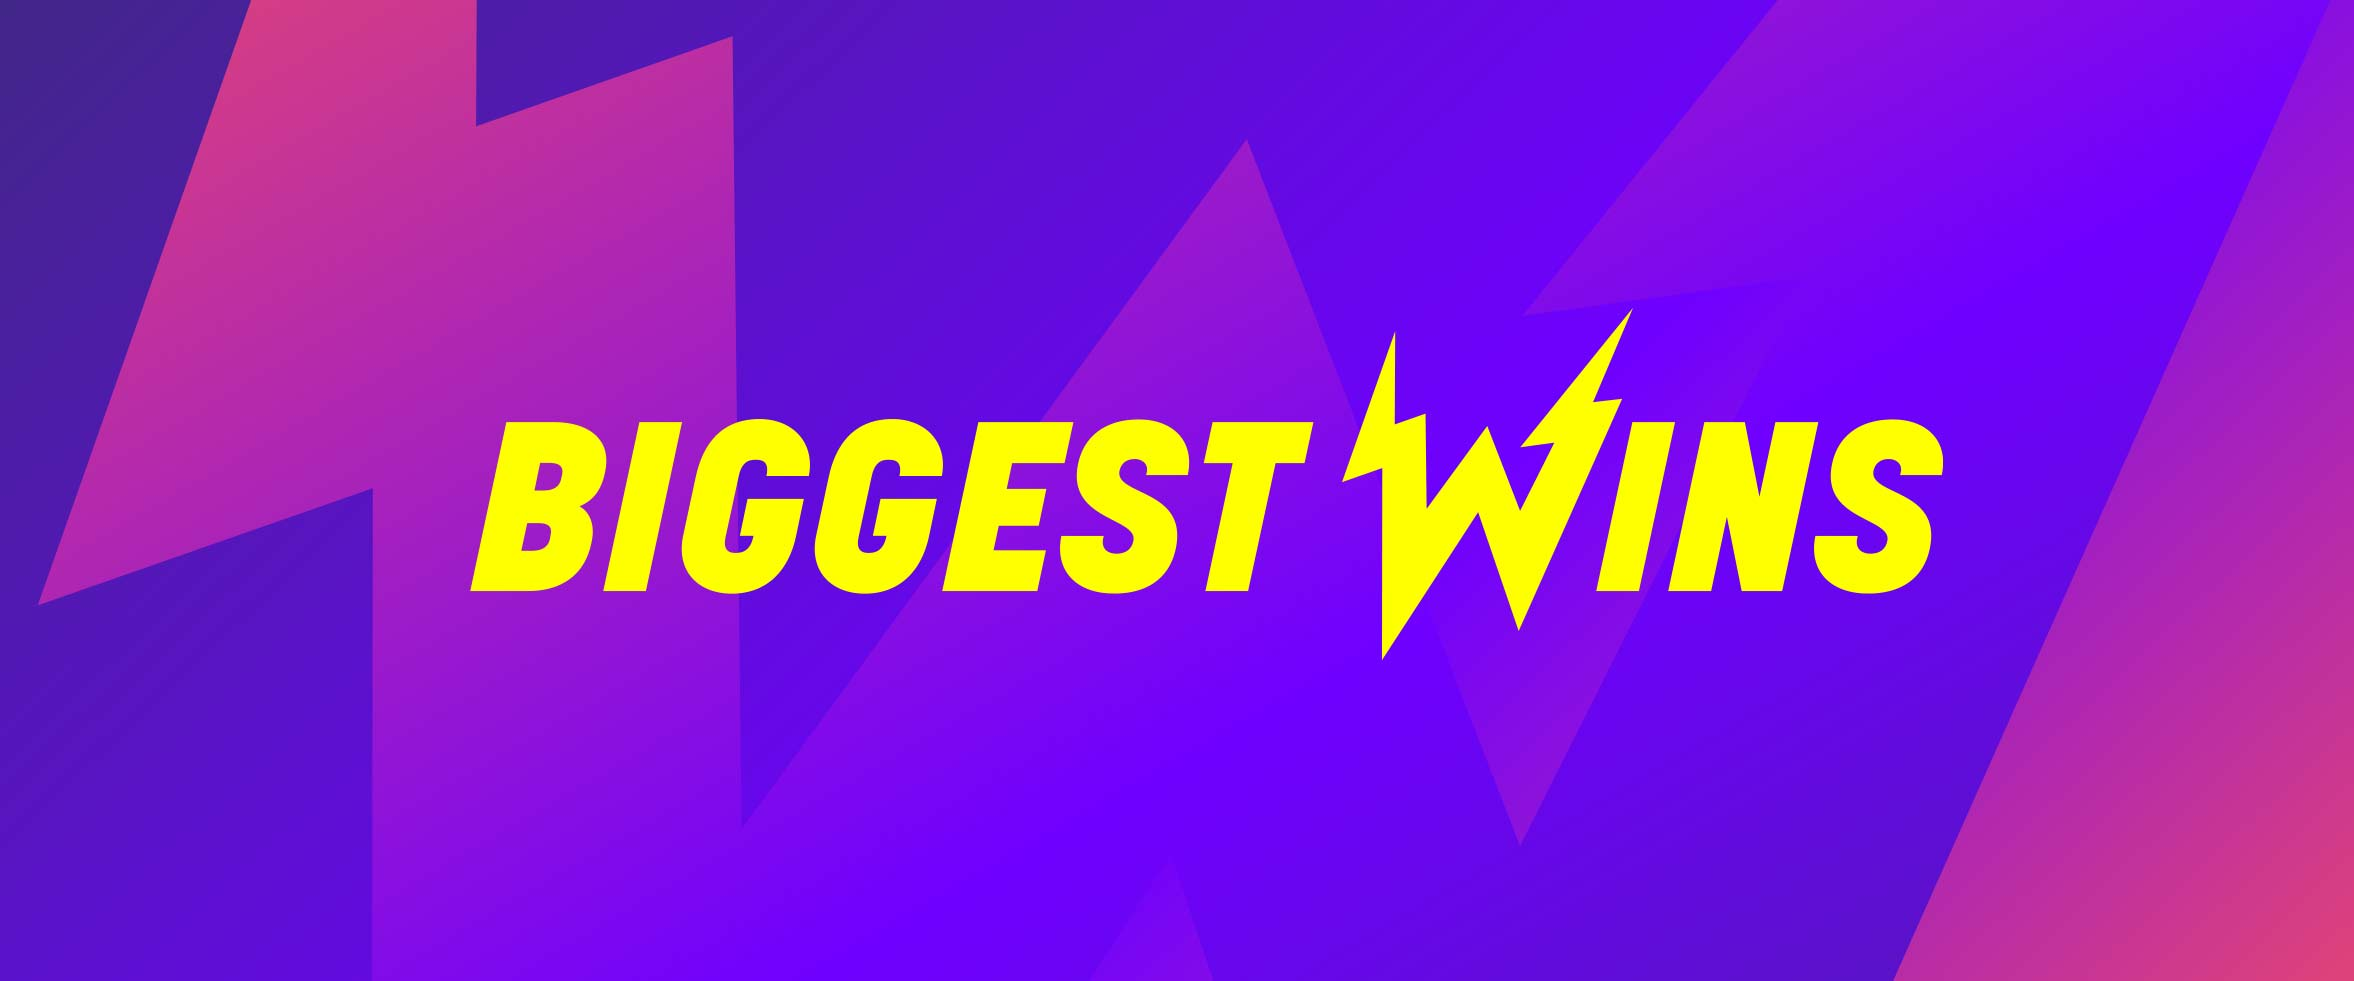 The Biggest Wins at Wildz in November